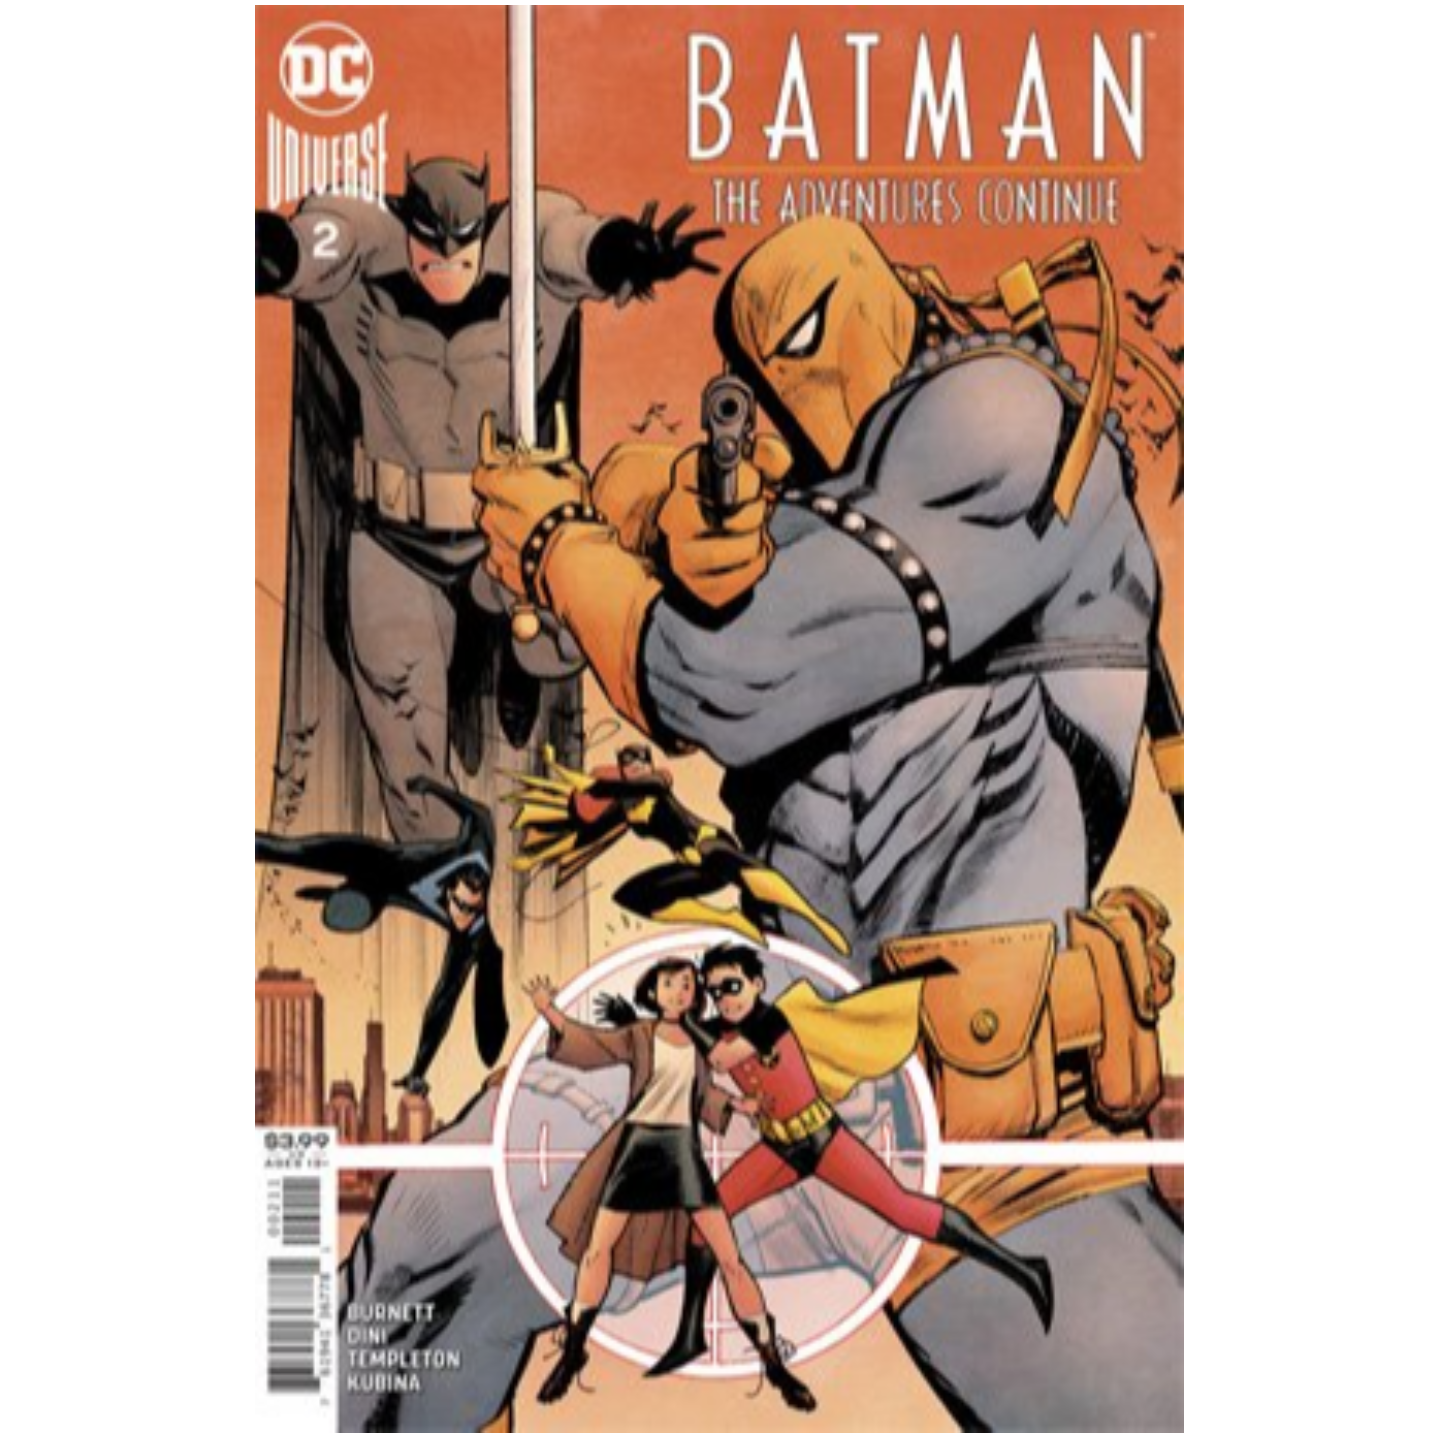 BATMAN THE ADVENTURES CONTINUE 2 OF 6 CVR A SEAN MURPHY